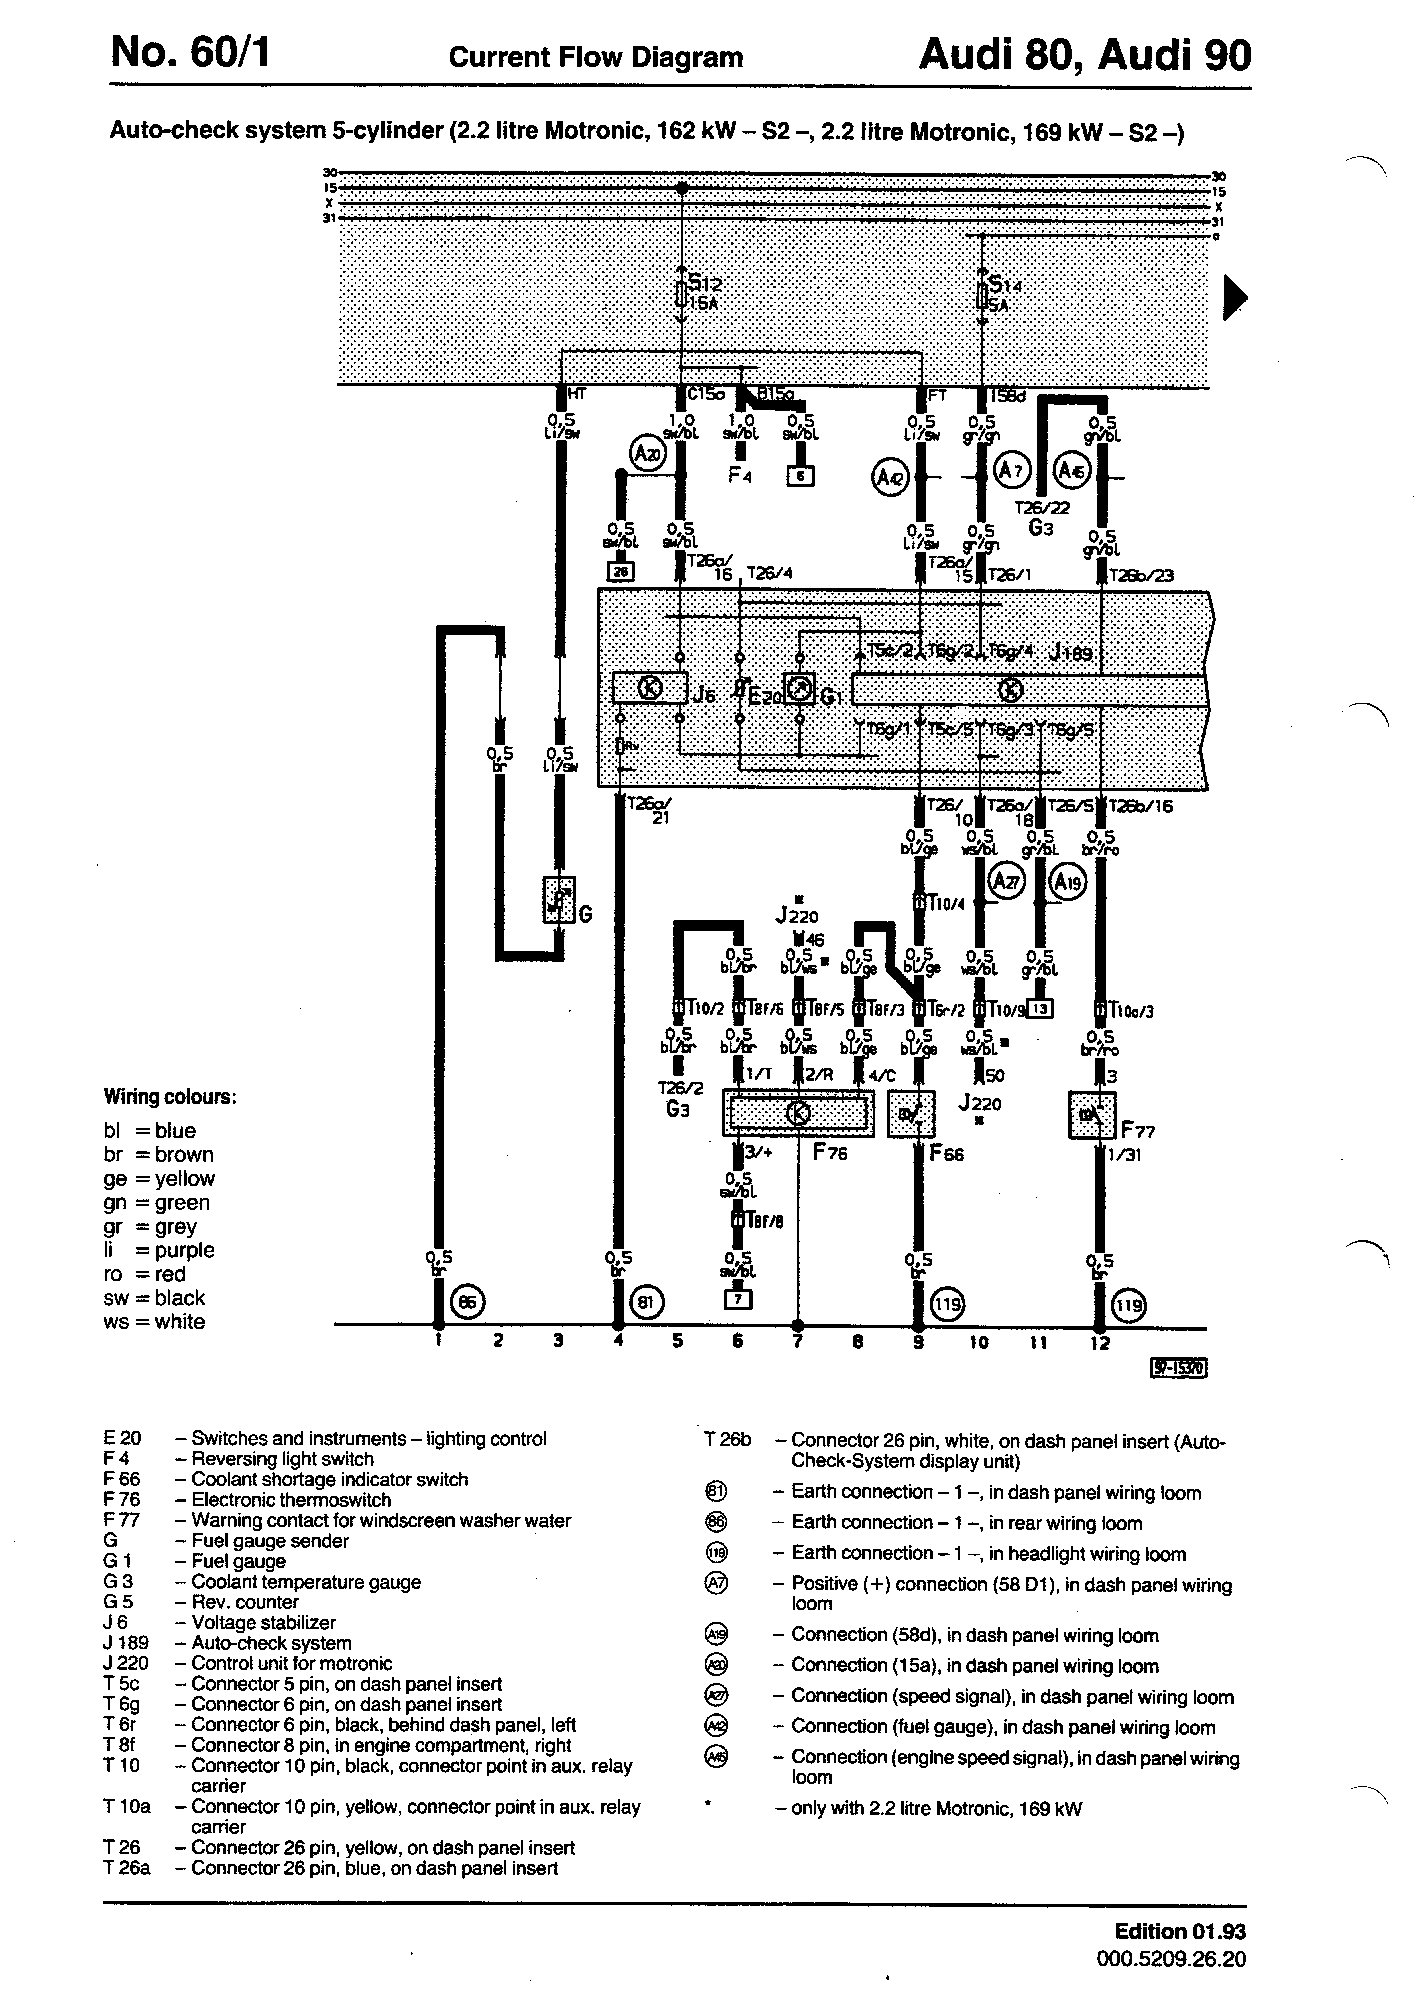 wiring diagrams component lookup switches and instruments lighting control e20